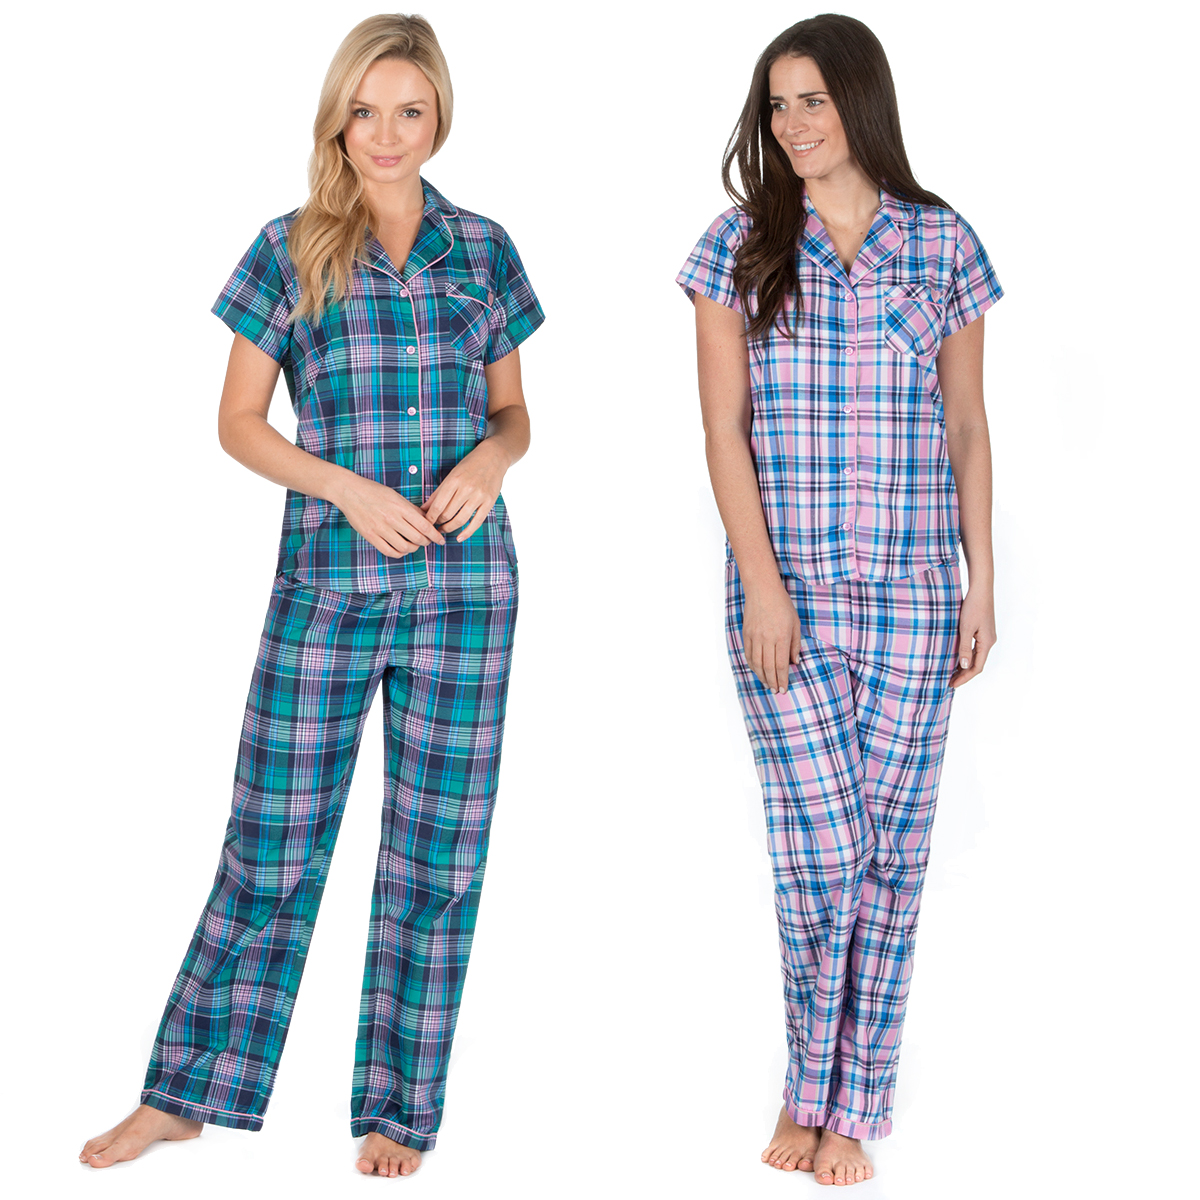 d57aa0a132 Ladies Checked Woven Pajama Set Button Up Front Short Sleeve PJs Nightwear  New